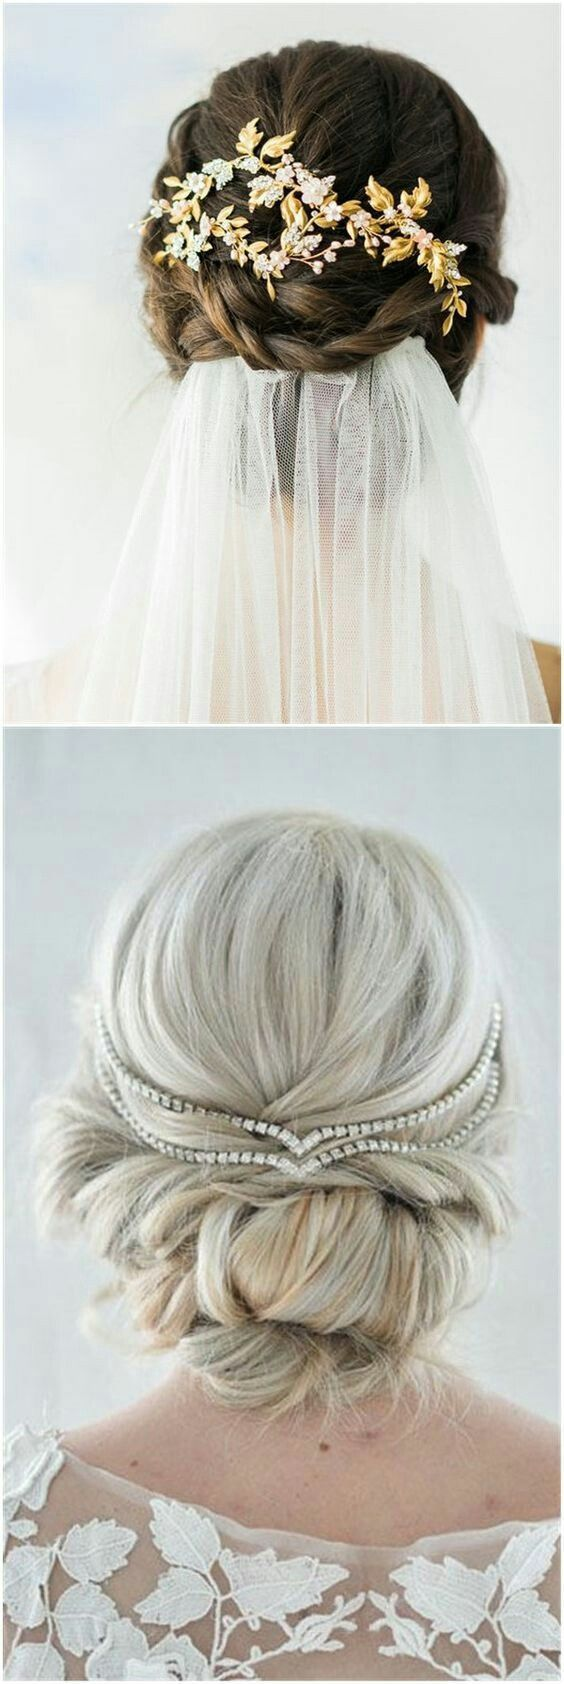 86 best TOCADOS NOVIA images on Pinterest | Bridal hairstyles ...